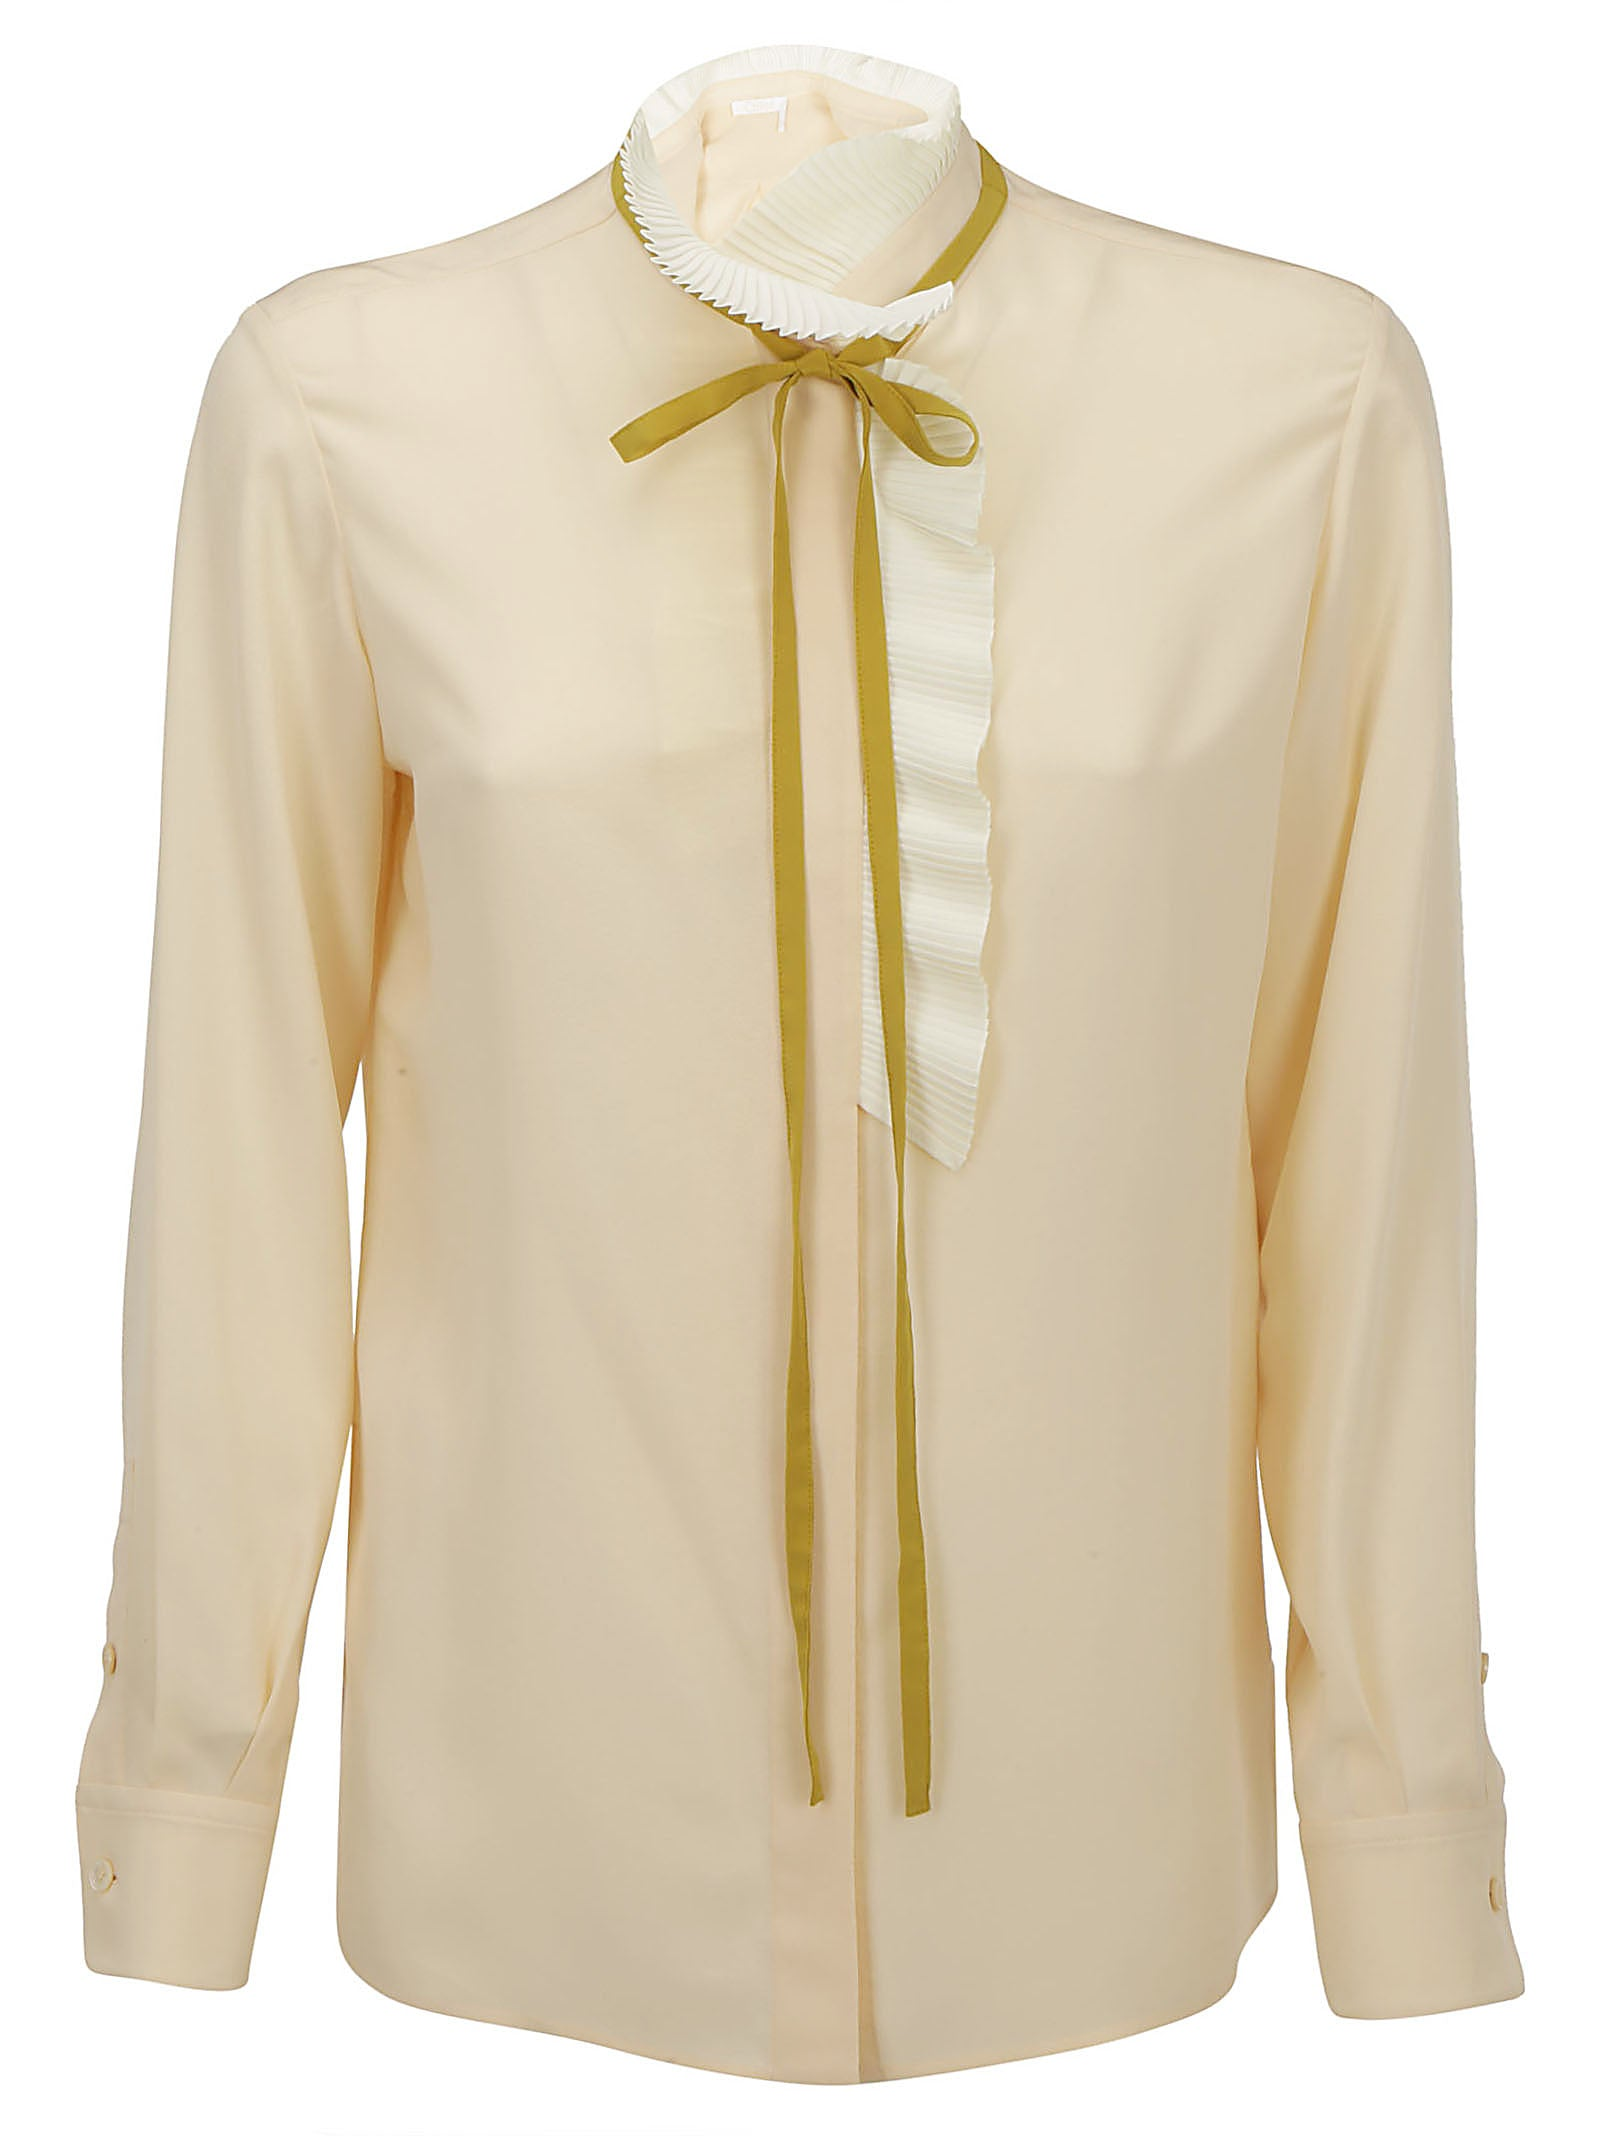 Chloé Tops CHLOÉ NECK TIE SHEER BLOUSE